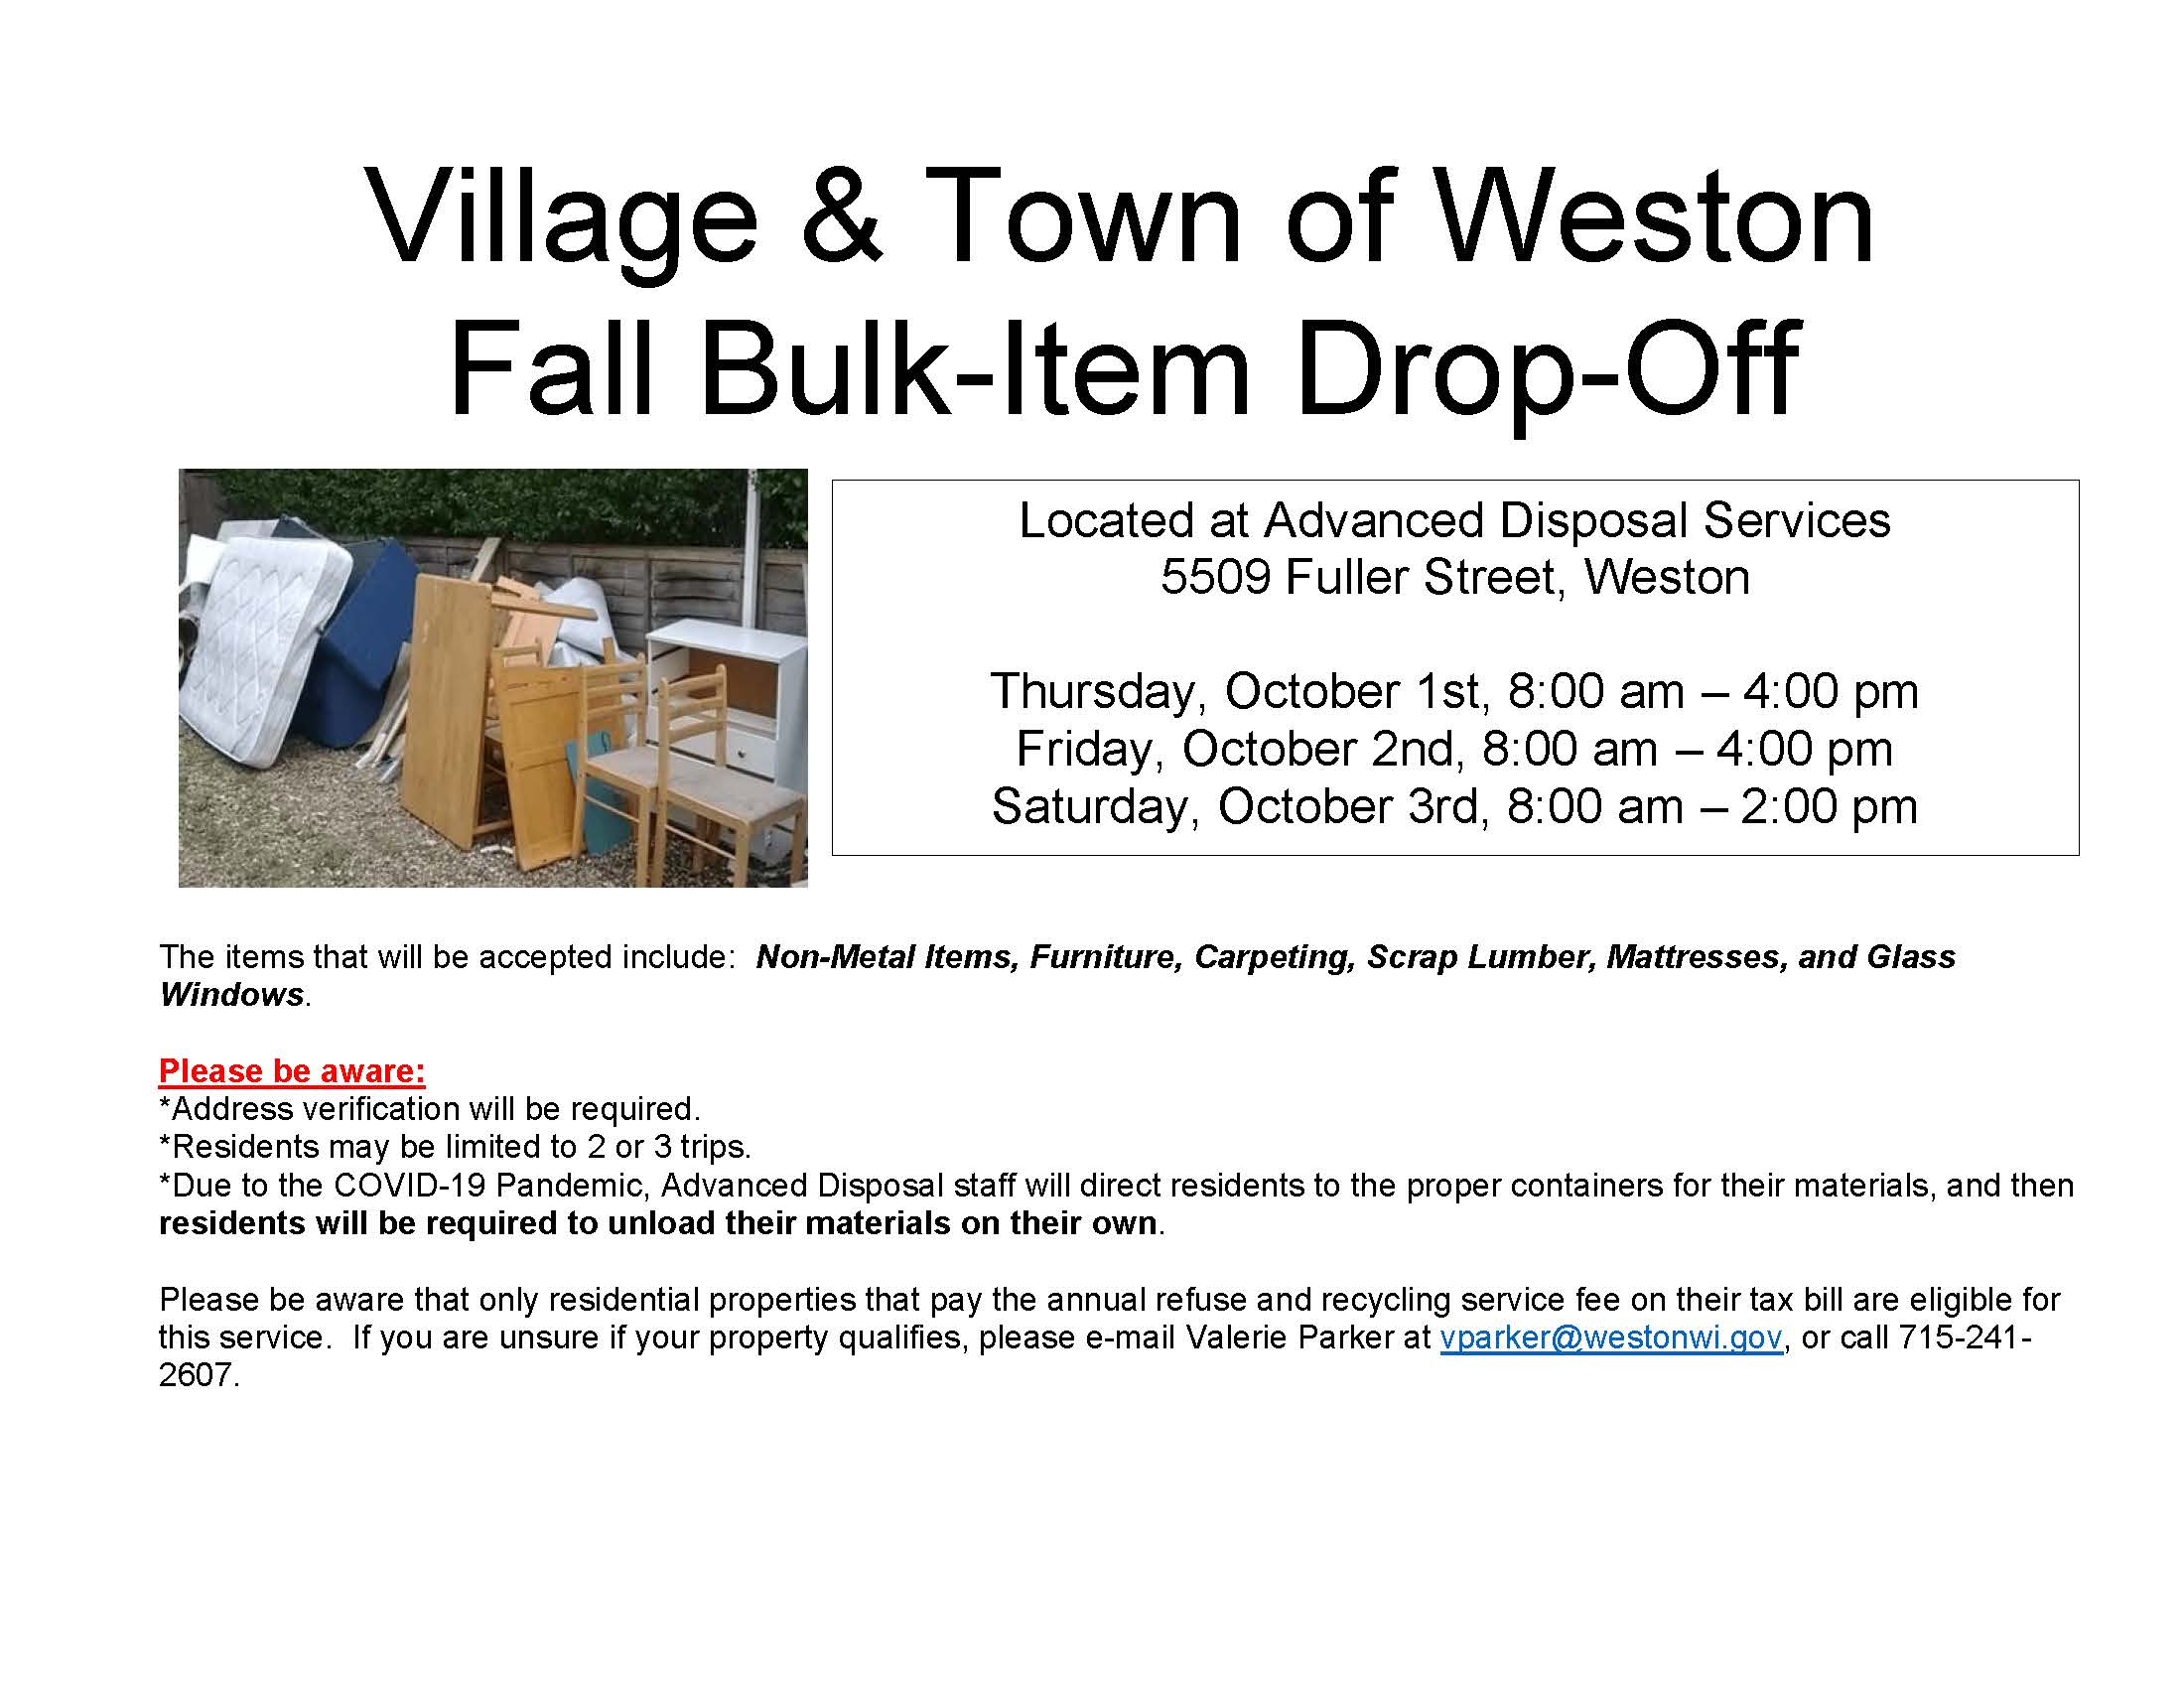 Fall Bulk-Item Drop-Off Flyer